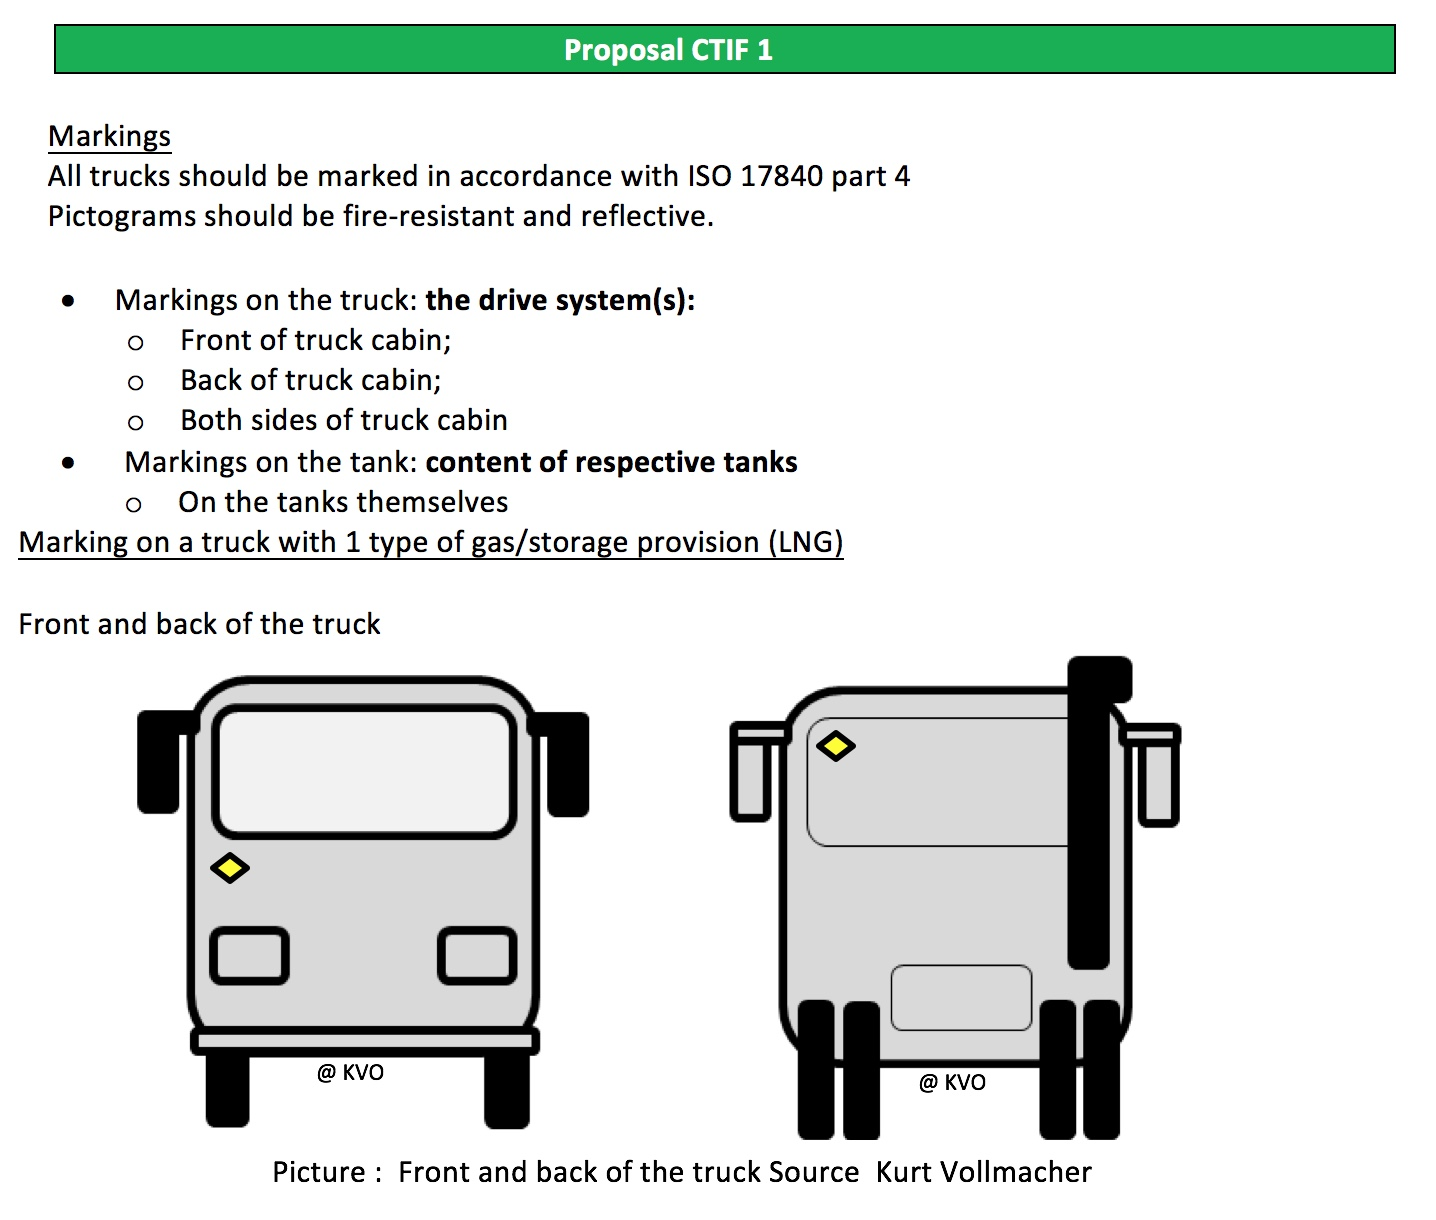 CTIF proposal for standardised markings on an LNG powered vehicle.